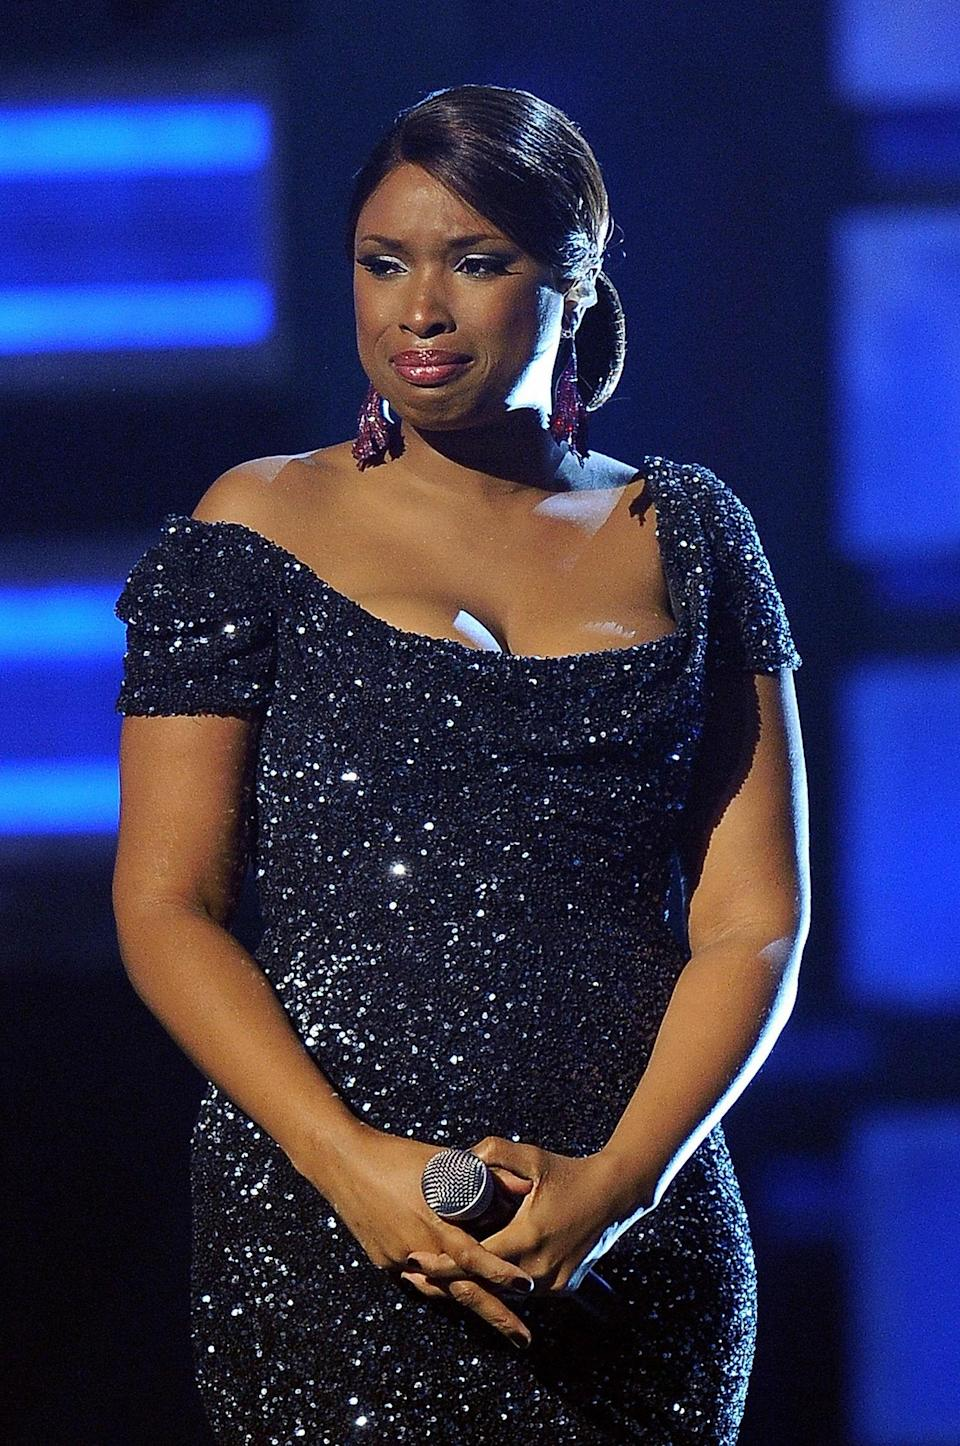 "Our hearts broke for <a href=""http://www.glamour.com/about/jennifer-hudson?mbid=synd_yahoo_rss"" rel=""nofollow noopener"" target=""_blank"" data-ylk=""slk:Jennifer Hudson"" class=""link rapid-noclick-resp"">Jennifer Hudson</a> when she suffered the tragic deaths of her mother, brother and young nephew in fall 2008. So when she appeared on the stage during the 2009 show—her first major appearance after the horrific ordeal—our eyes immediately welled up. Backed by a choir, J-Hud delivered a flawless performance of her hit ""You Pulled Me Through"" breaking down into tears while delivering the final words."